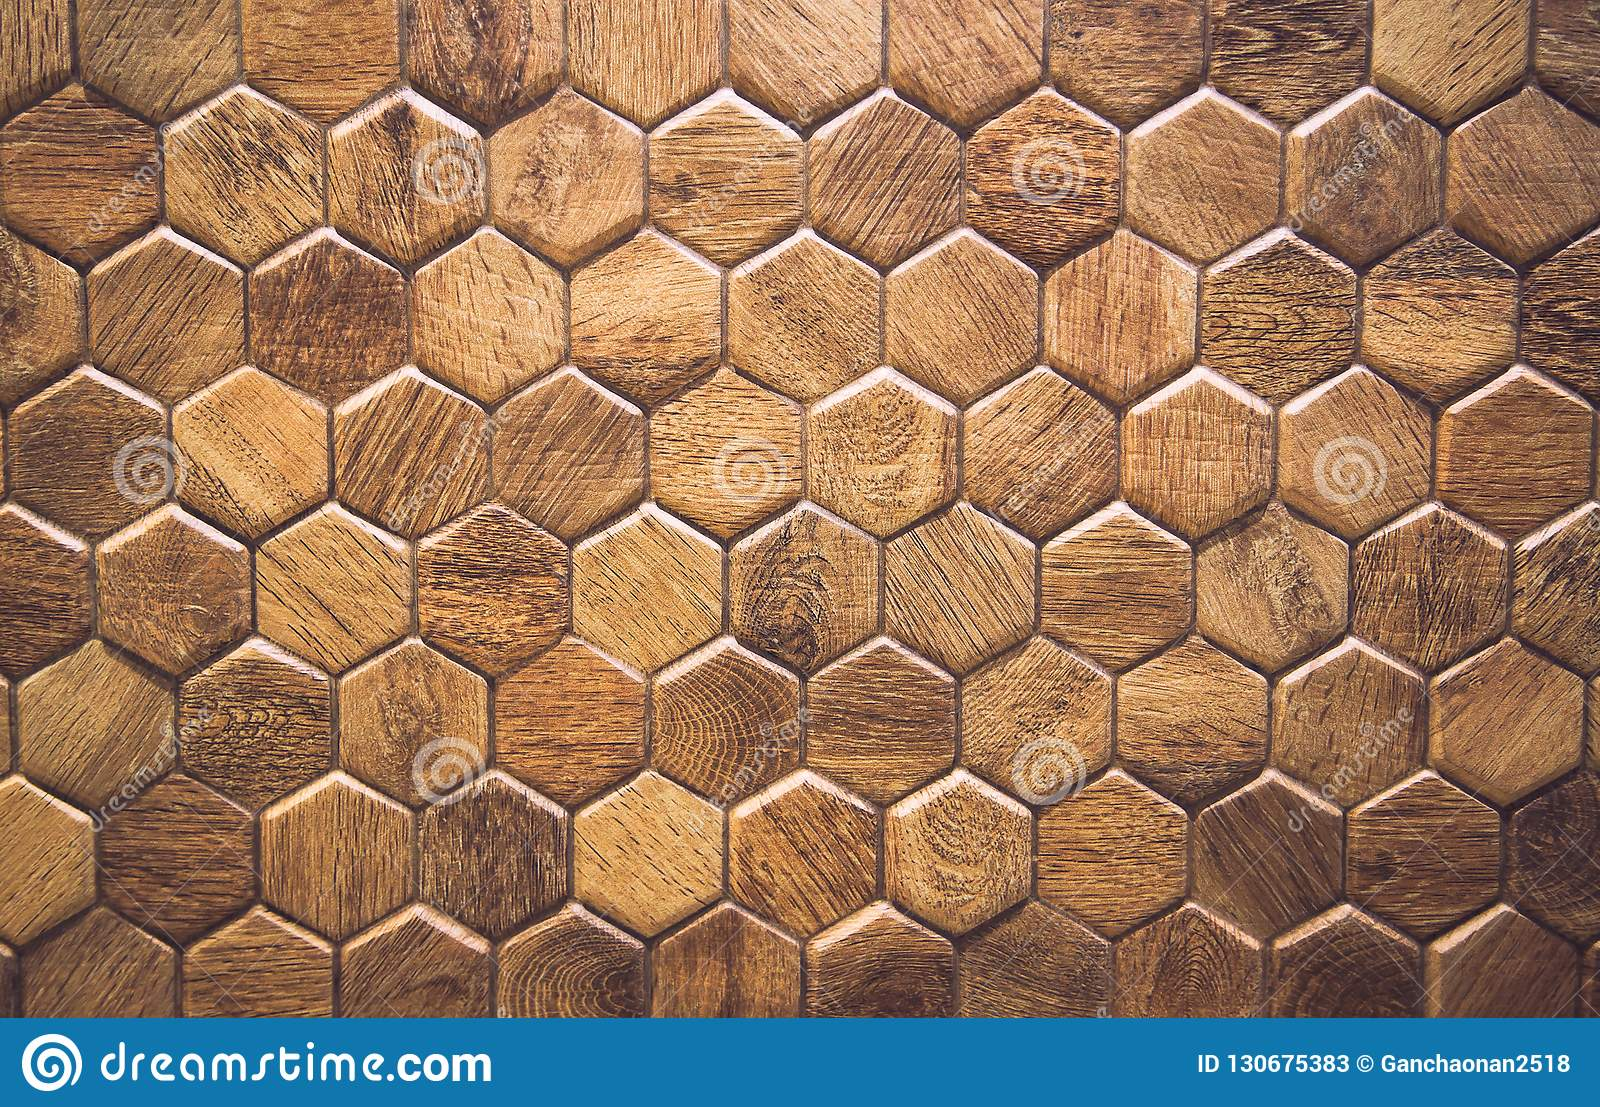 Tiles Texture With Elements Material Wood Oak Stock